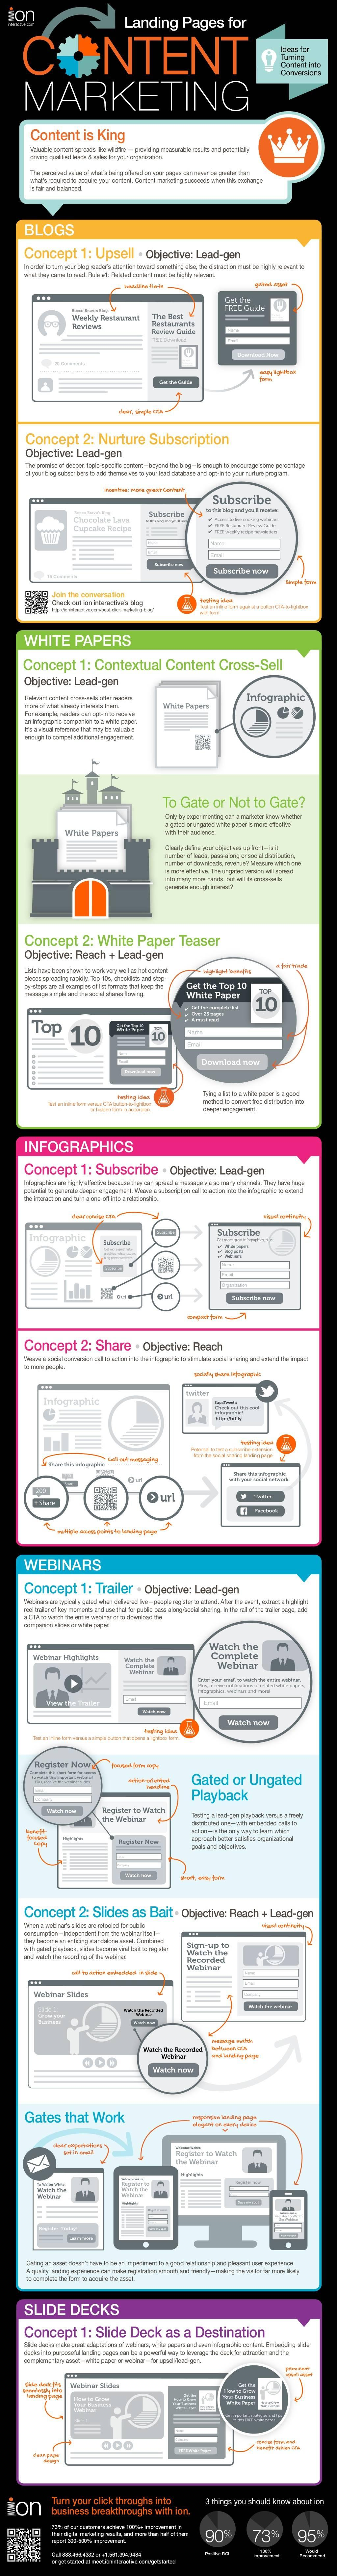 Infographie sur le content marketing et les landing pages